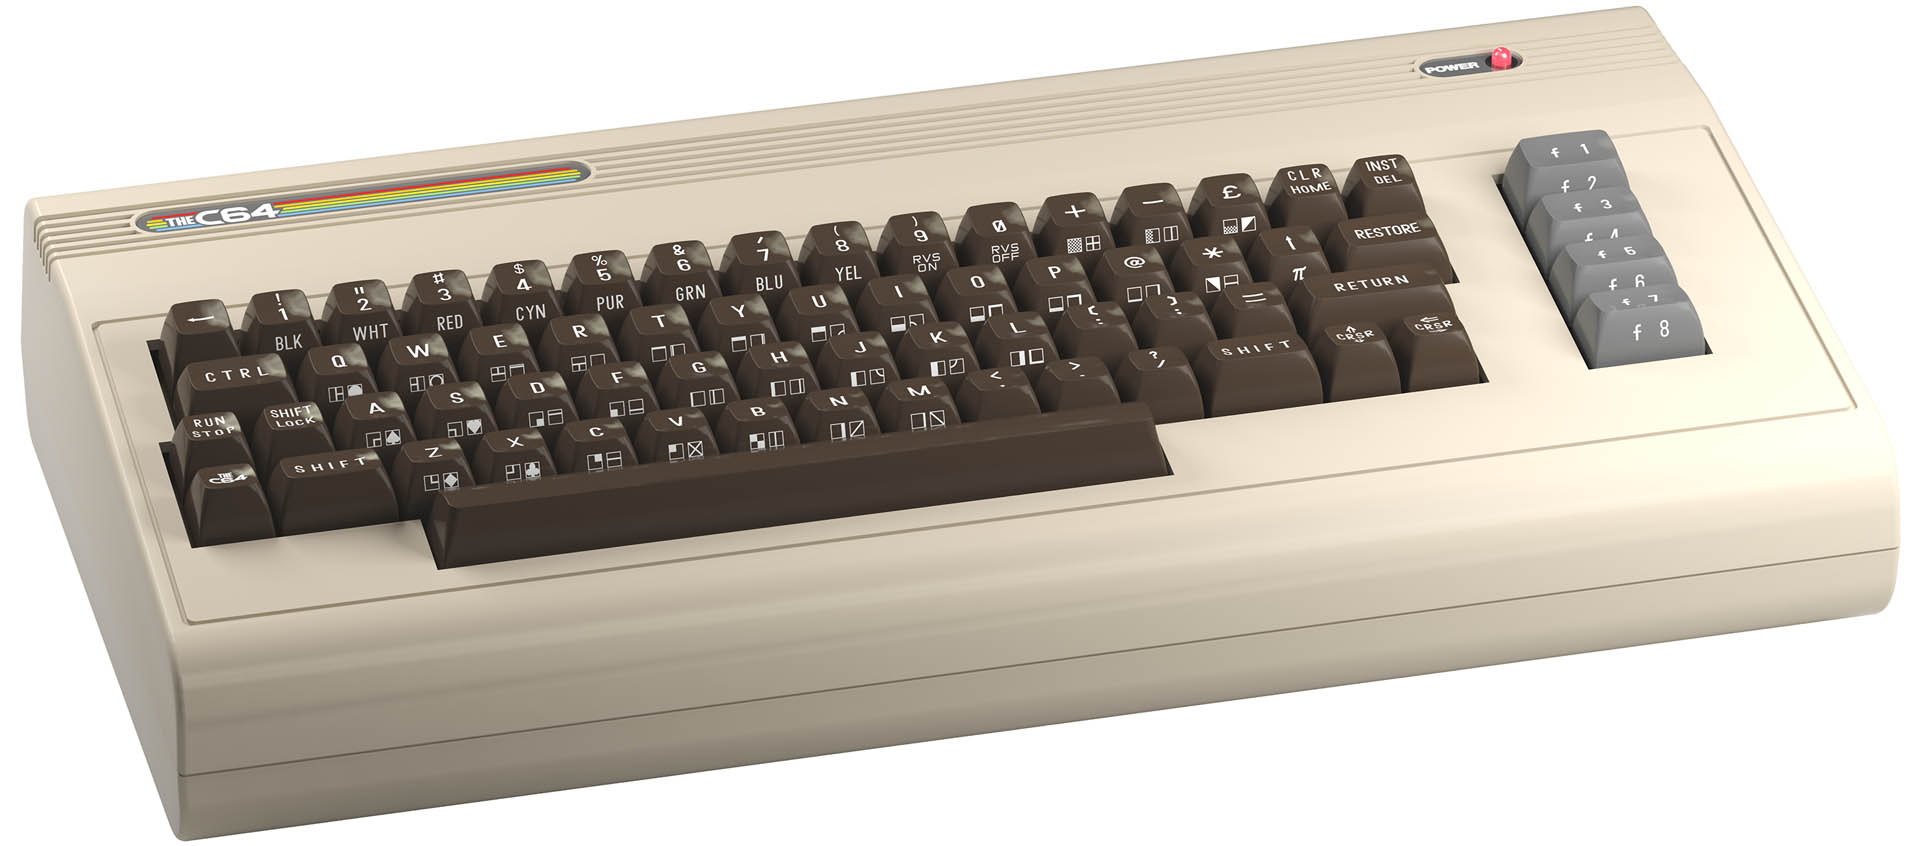 The C64: torna il Commodore 64 a grandezza naturale 1